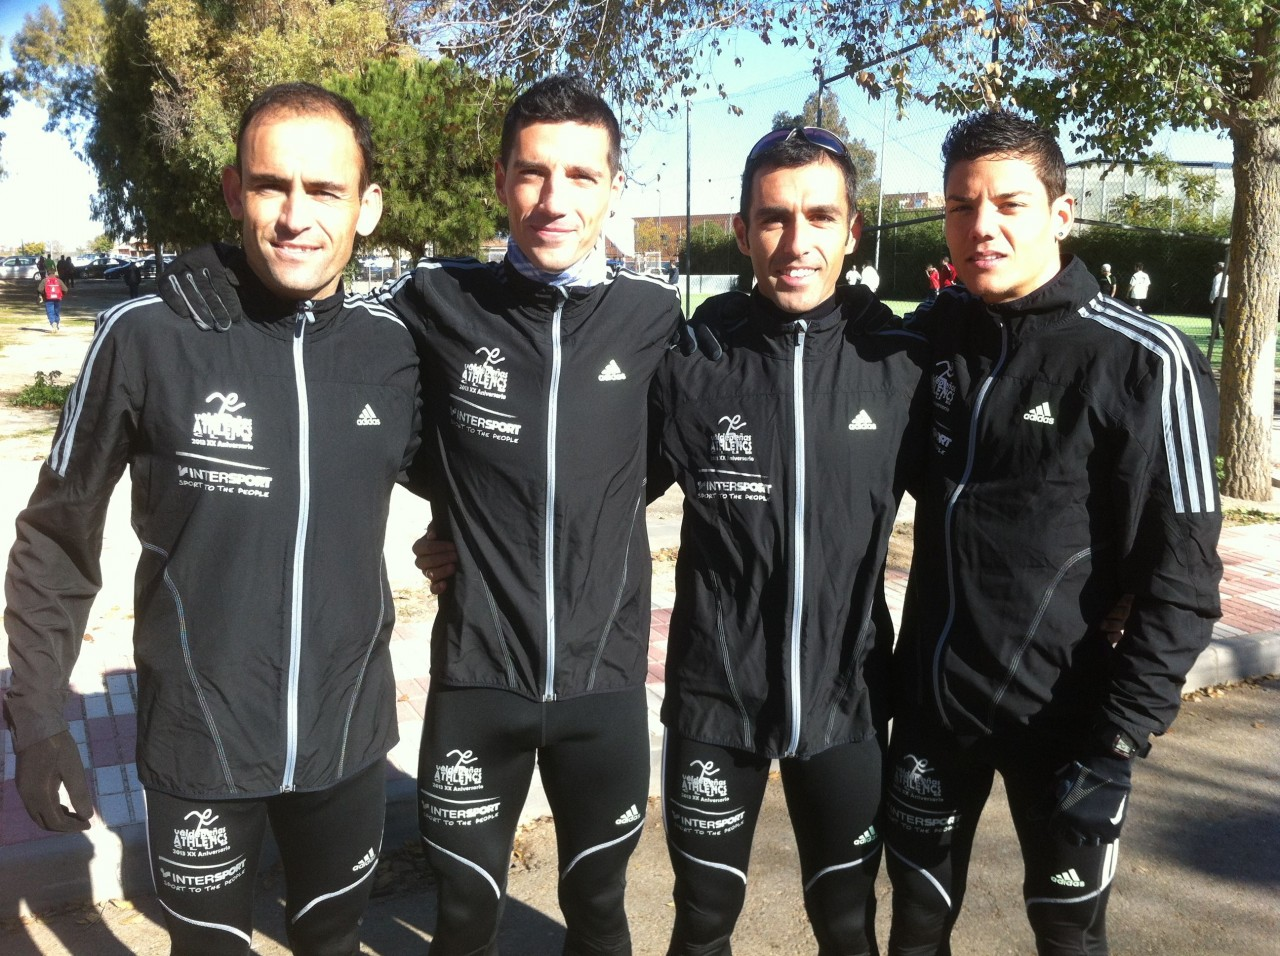 El Valdepeñas Athletics Club - Intersport Campeón de Castilla la Mancha de cross corto